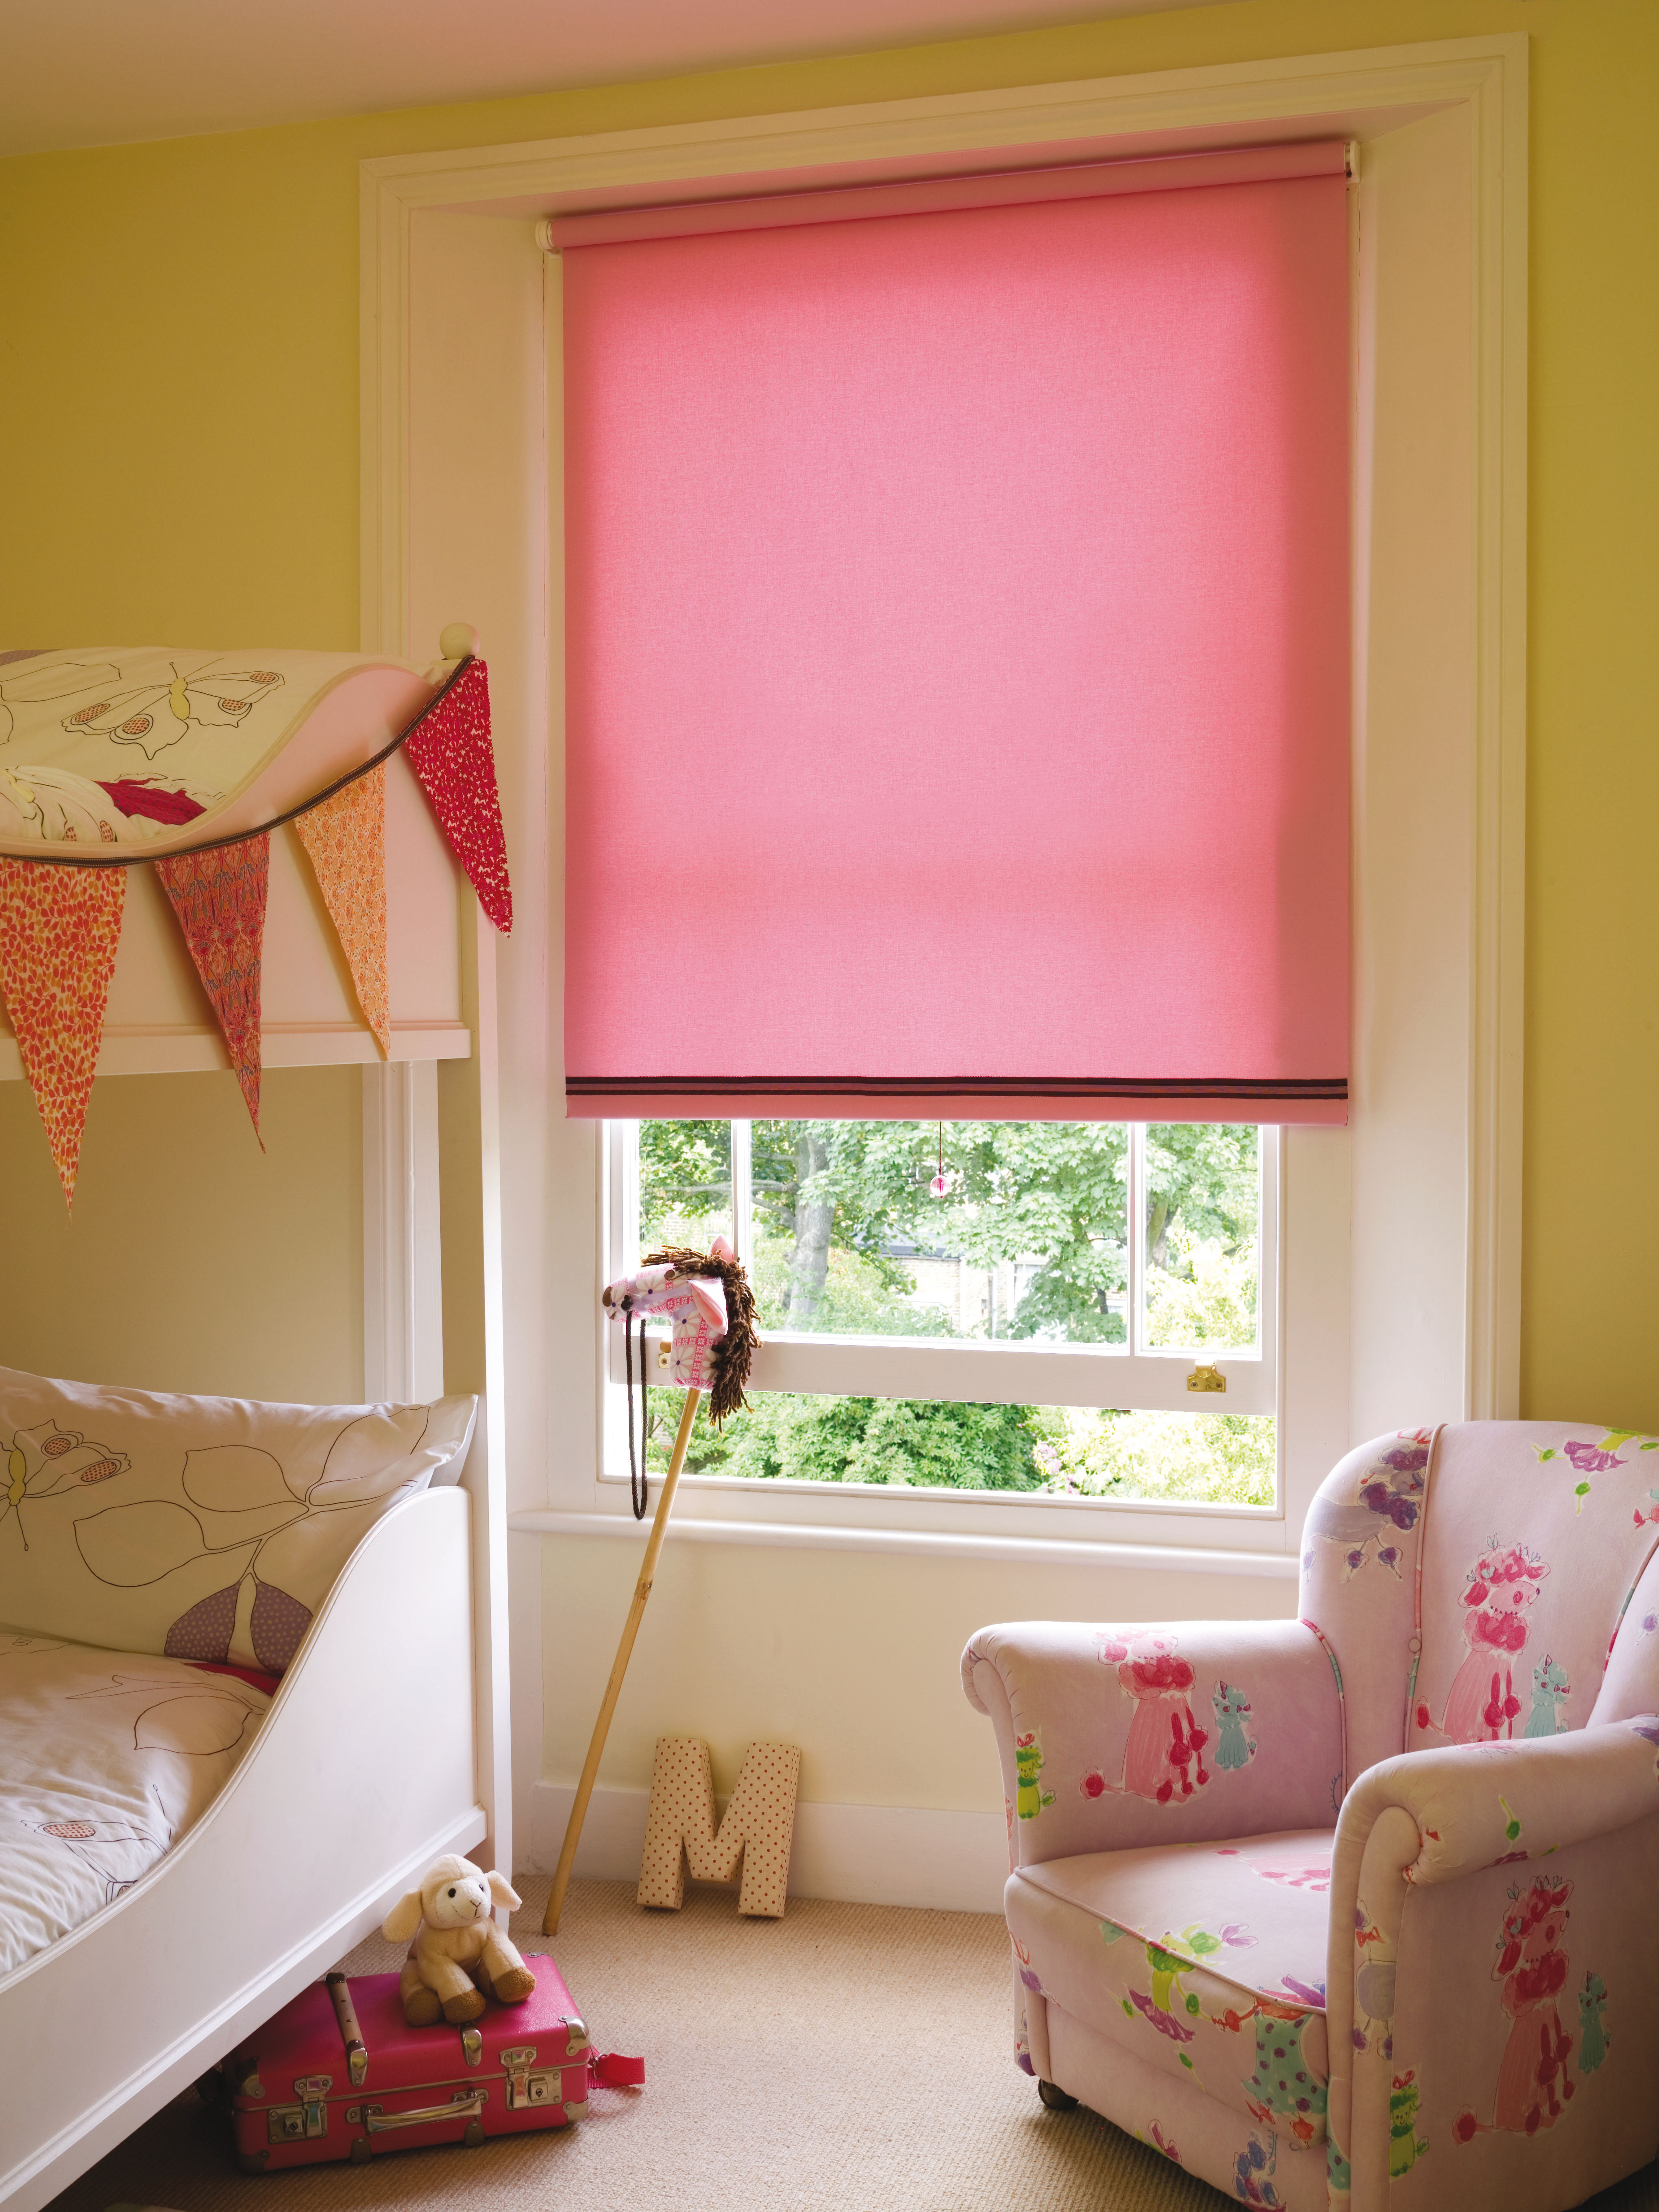 Best Blind for Your Child's Room